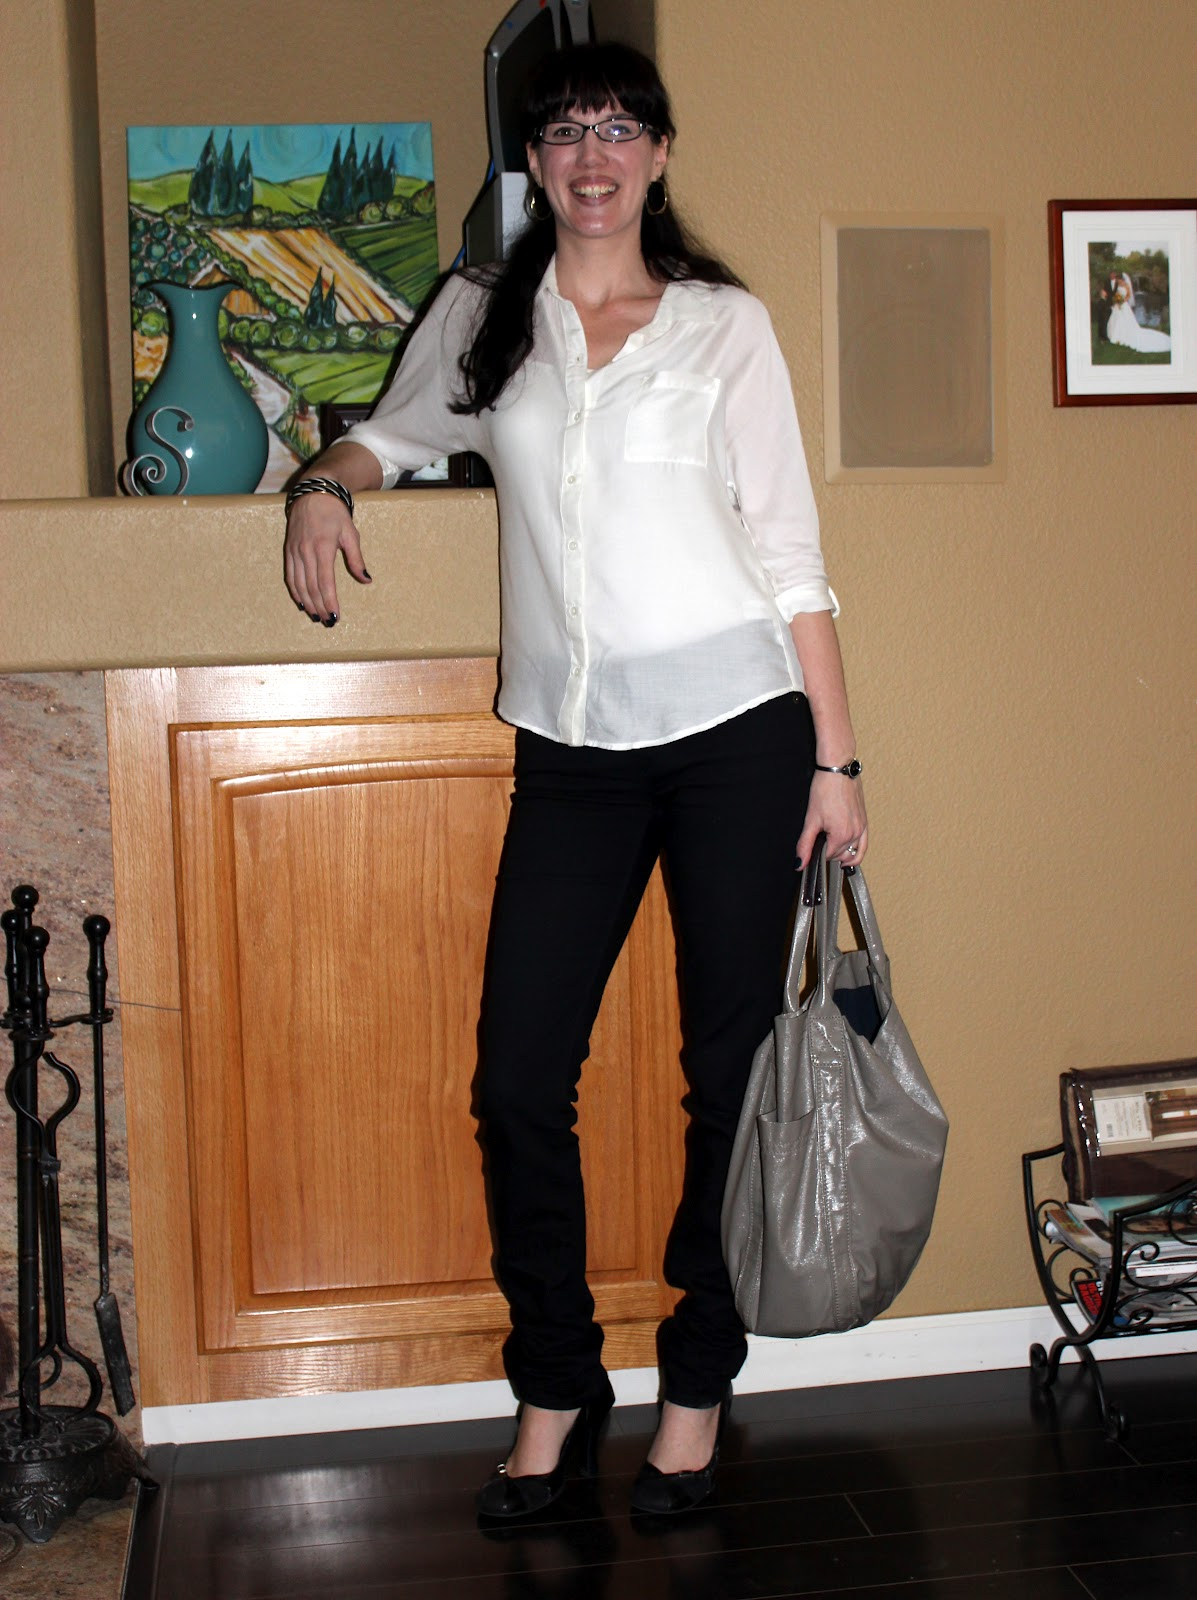 Luxury The Company Has A New Womens Line, And Ive Had The Good Fortune To Test Some Of Those Items As Well As Others This First Of Multiple Propper Wear Reviews Covers